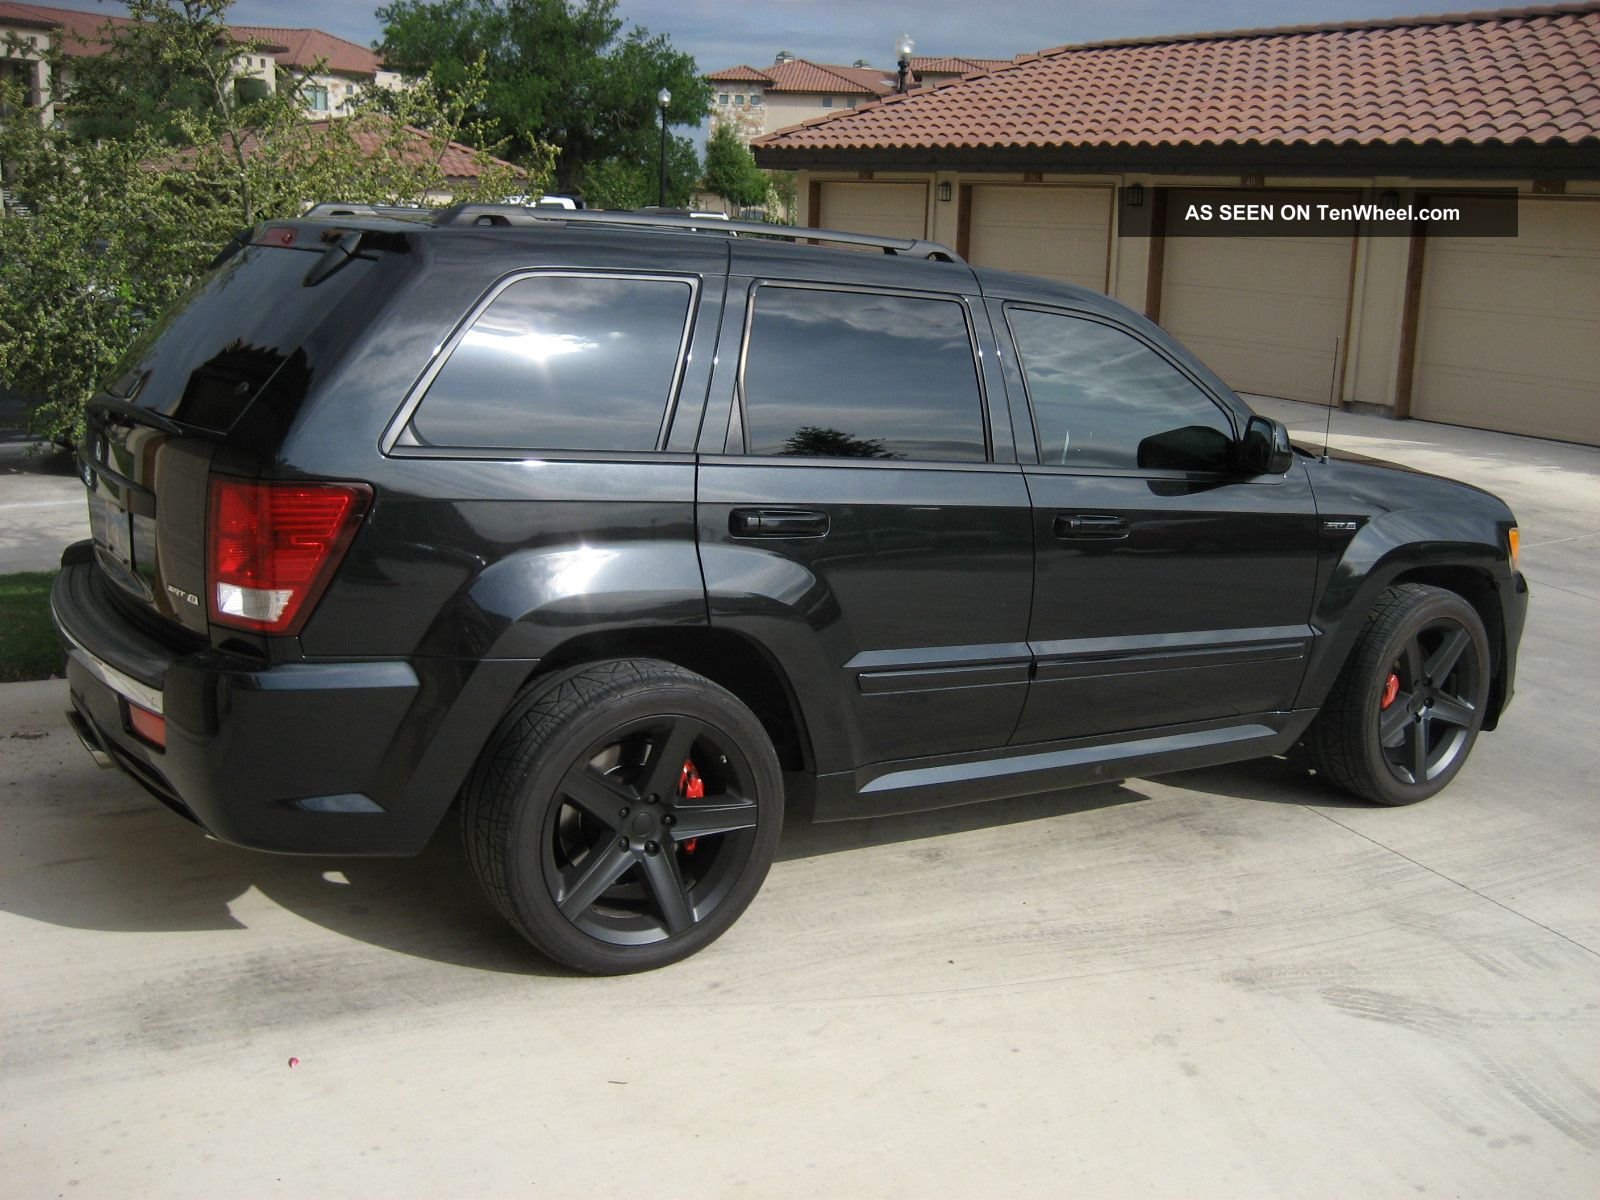 2009 jeep grand cherokee srt8 sport utility 4 door 6 1l. Black Bedroom Furniture Sets. Home Design Ideas